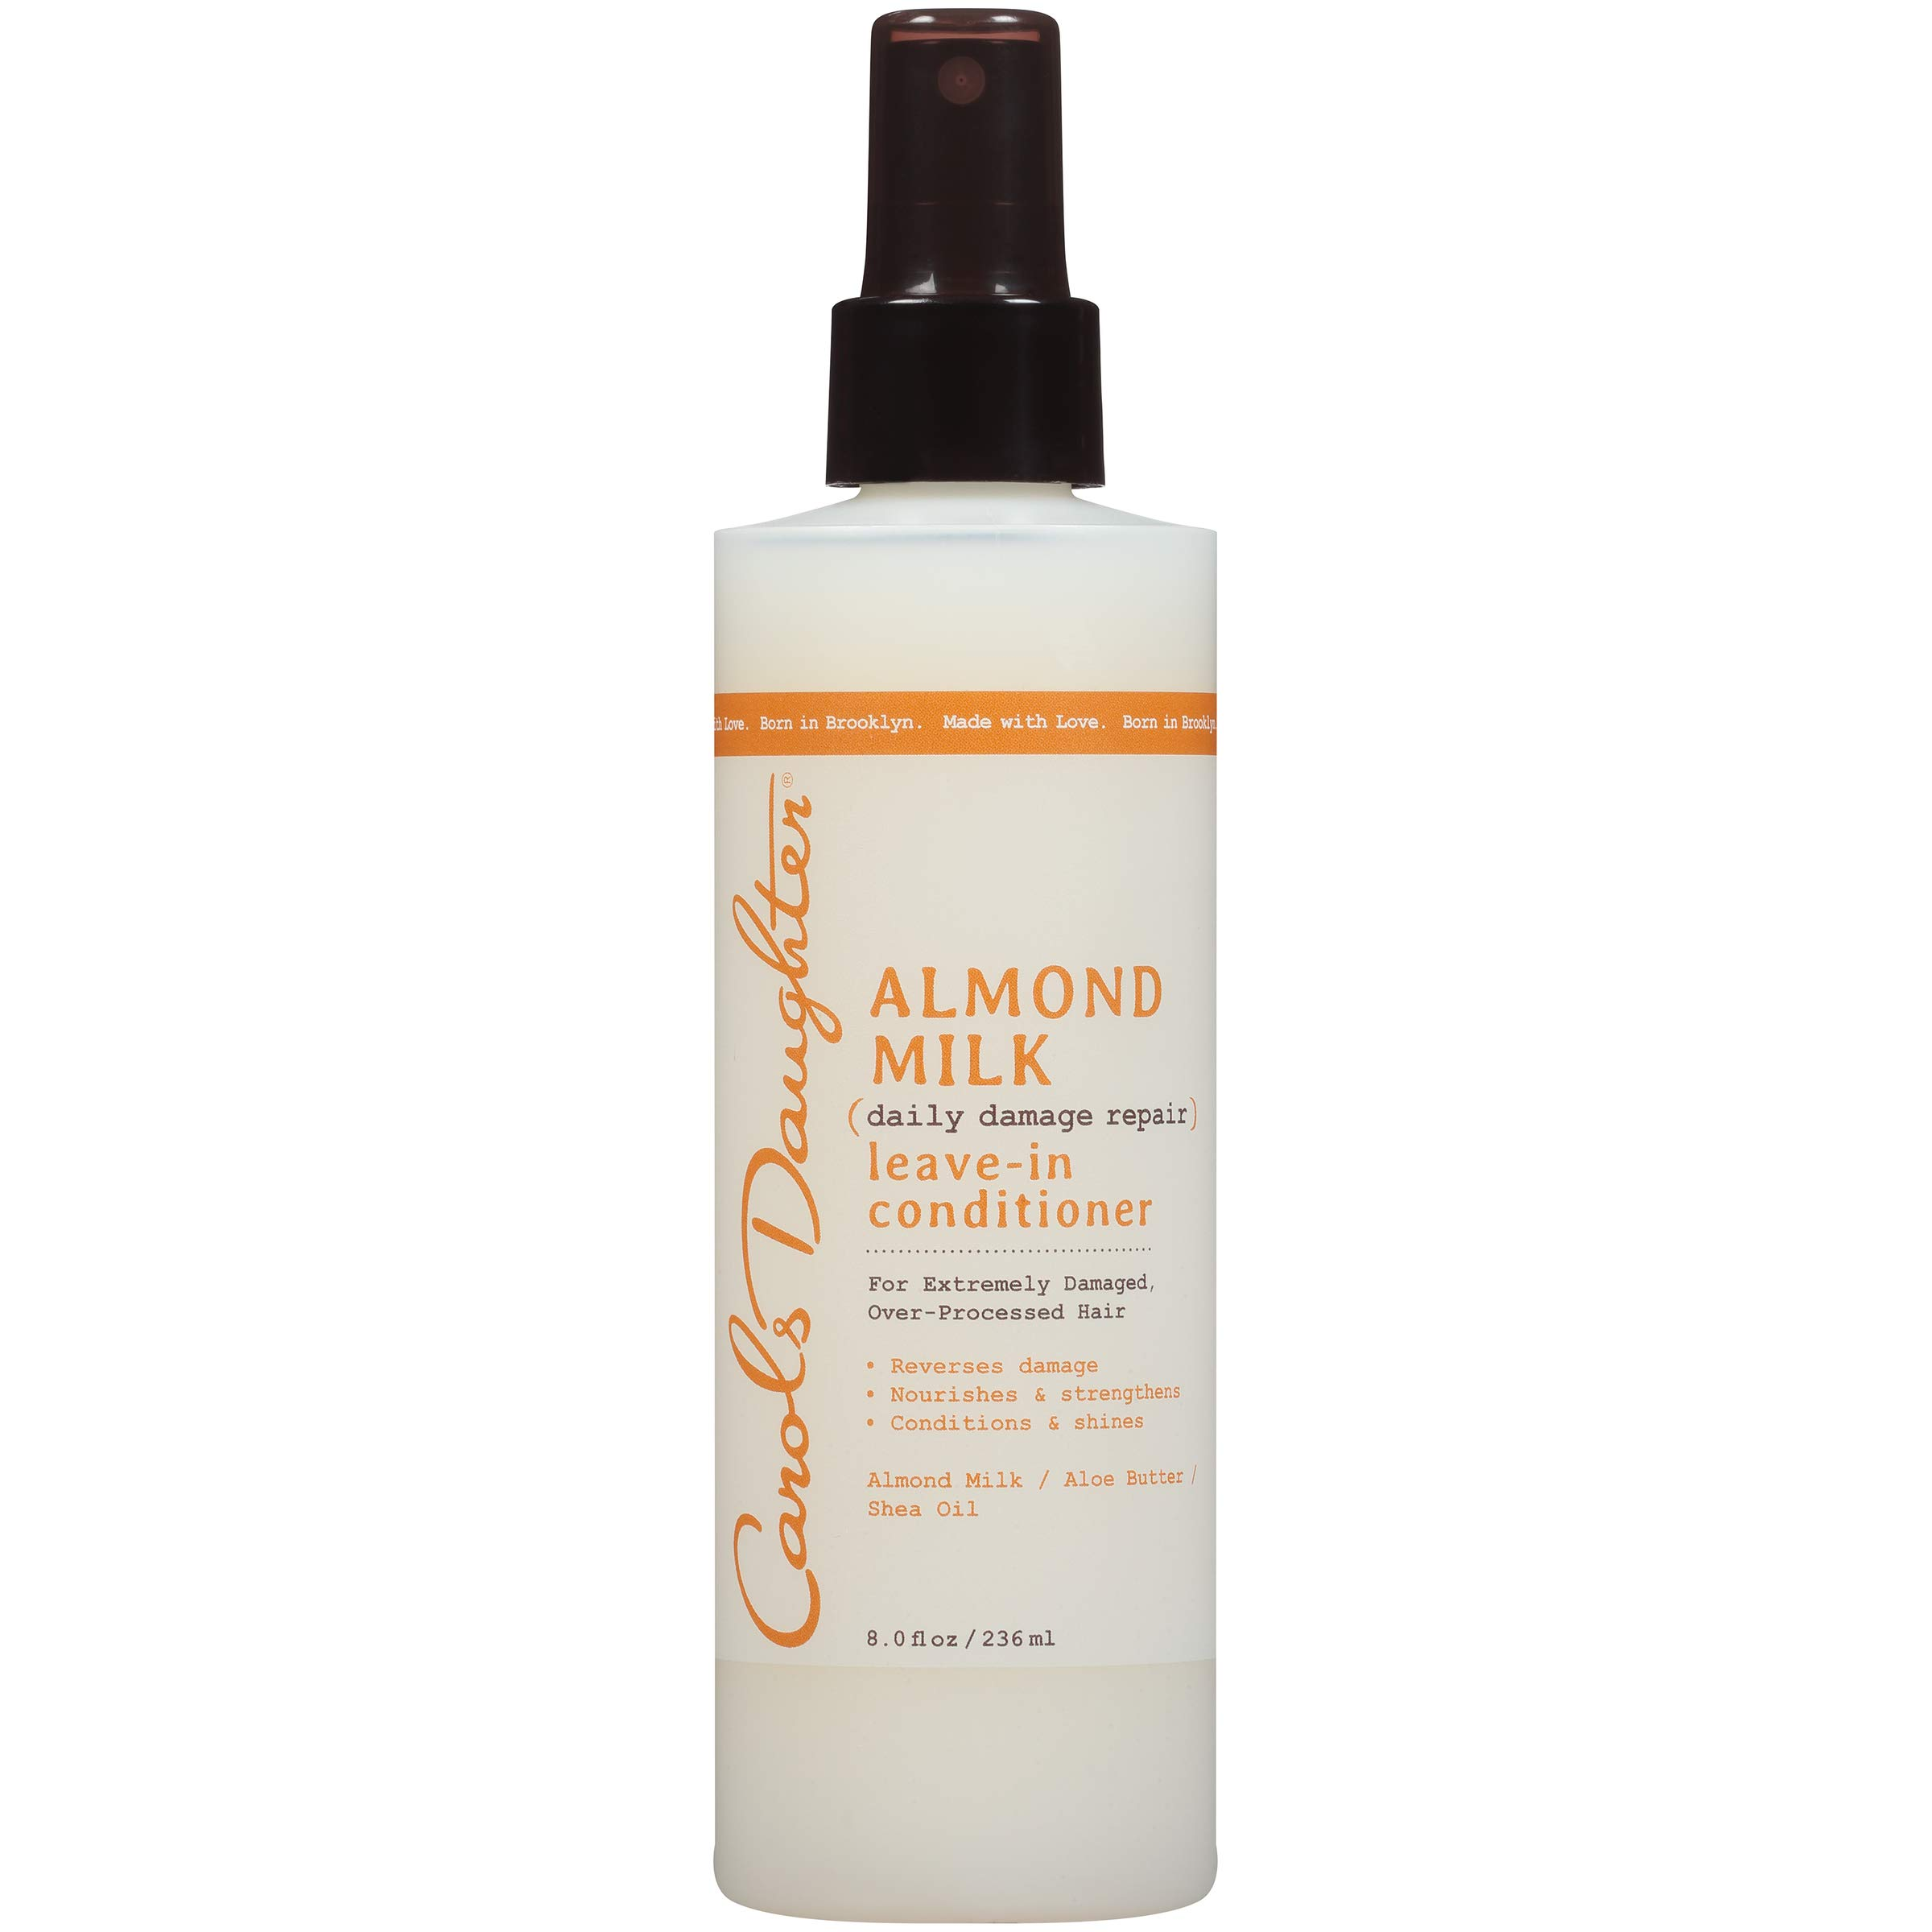 Carol's Daughter Almond Milk Leave In Conditioner with Almond Milk, Aloe Butter and Shea Oil for Extremely Damaged Hair, 8 fl oz